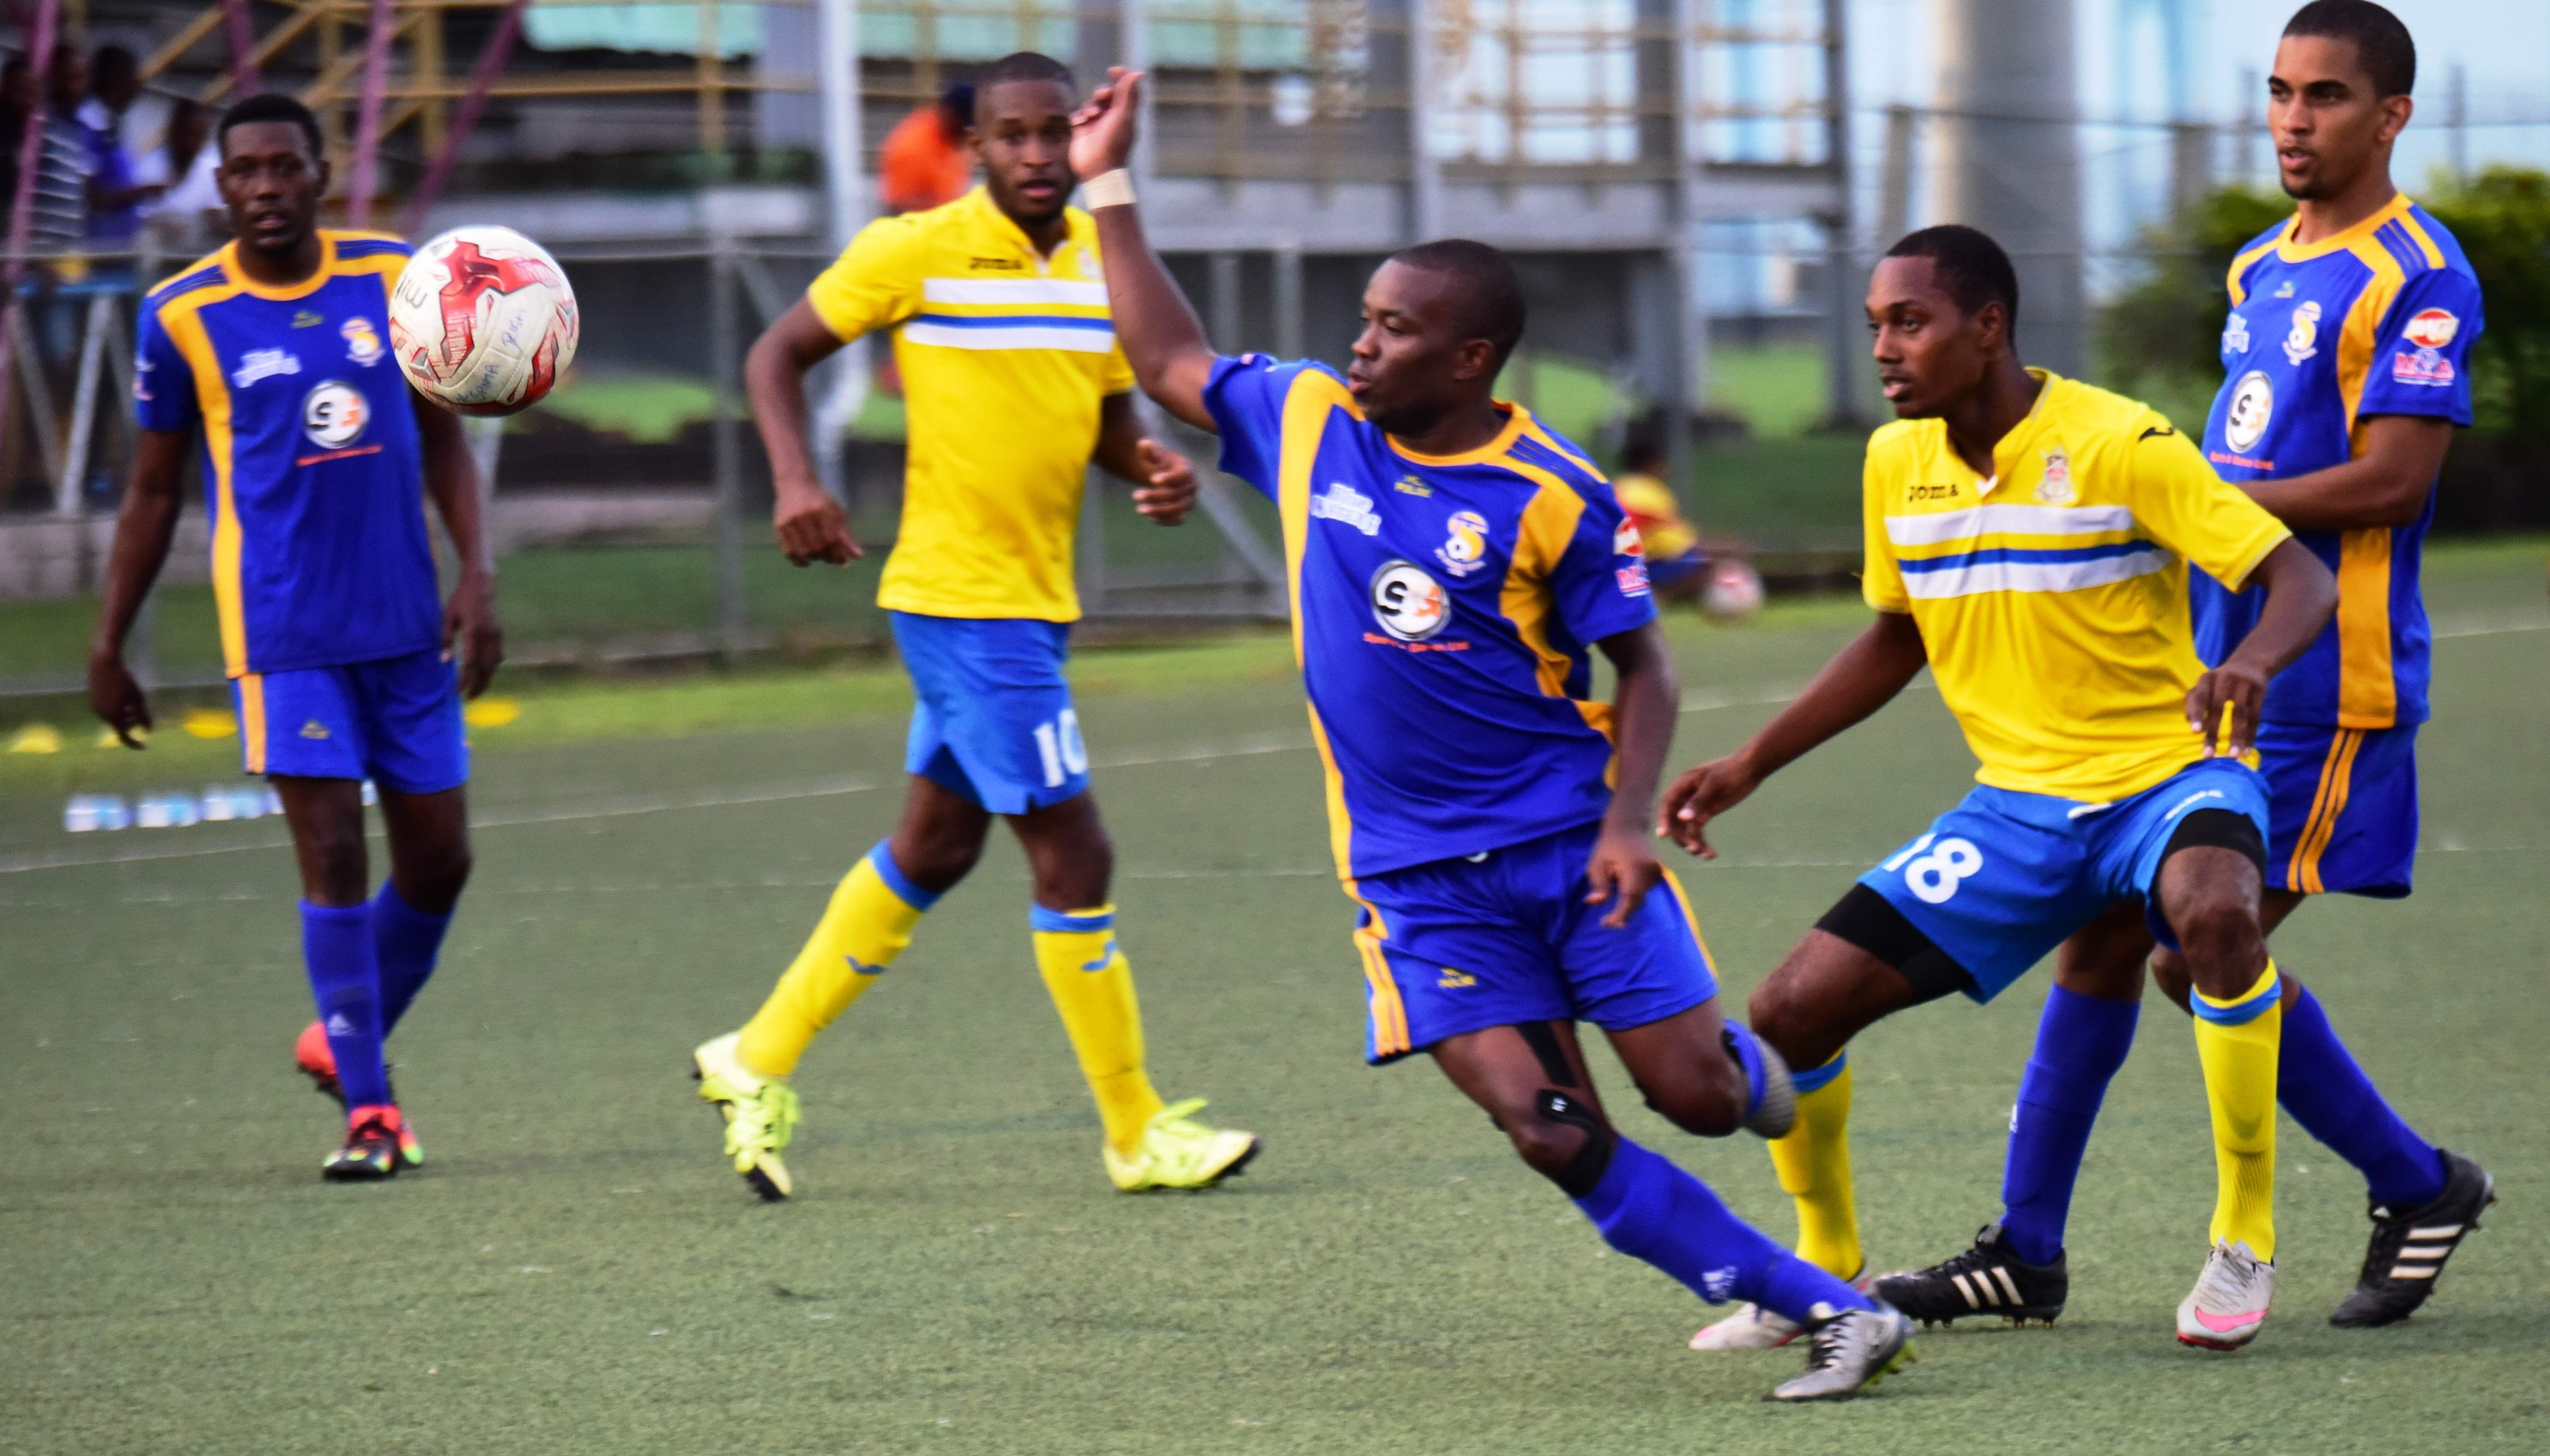 National Super League action between 2016 Champions FC Santa Rosa (purple) and Defence Force earlier this season. The teams filled the top two spot in the competition.